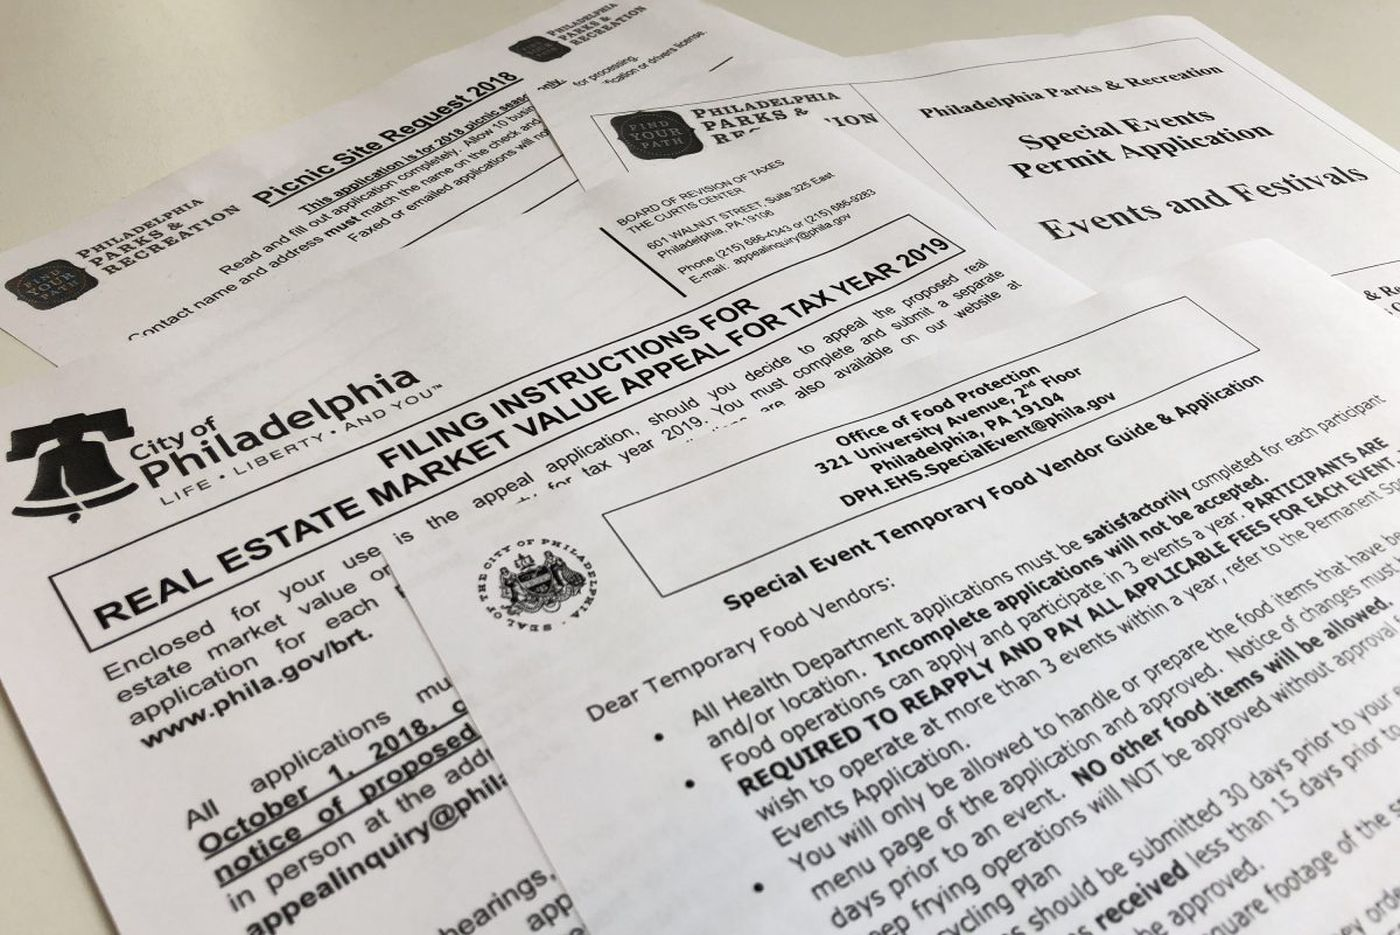 10 billion hours of paperwork!? Philadelphia, other cities aim to simplify those forms